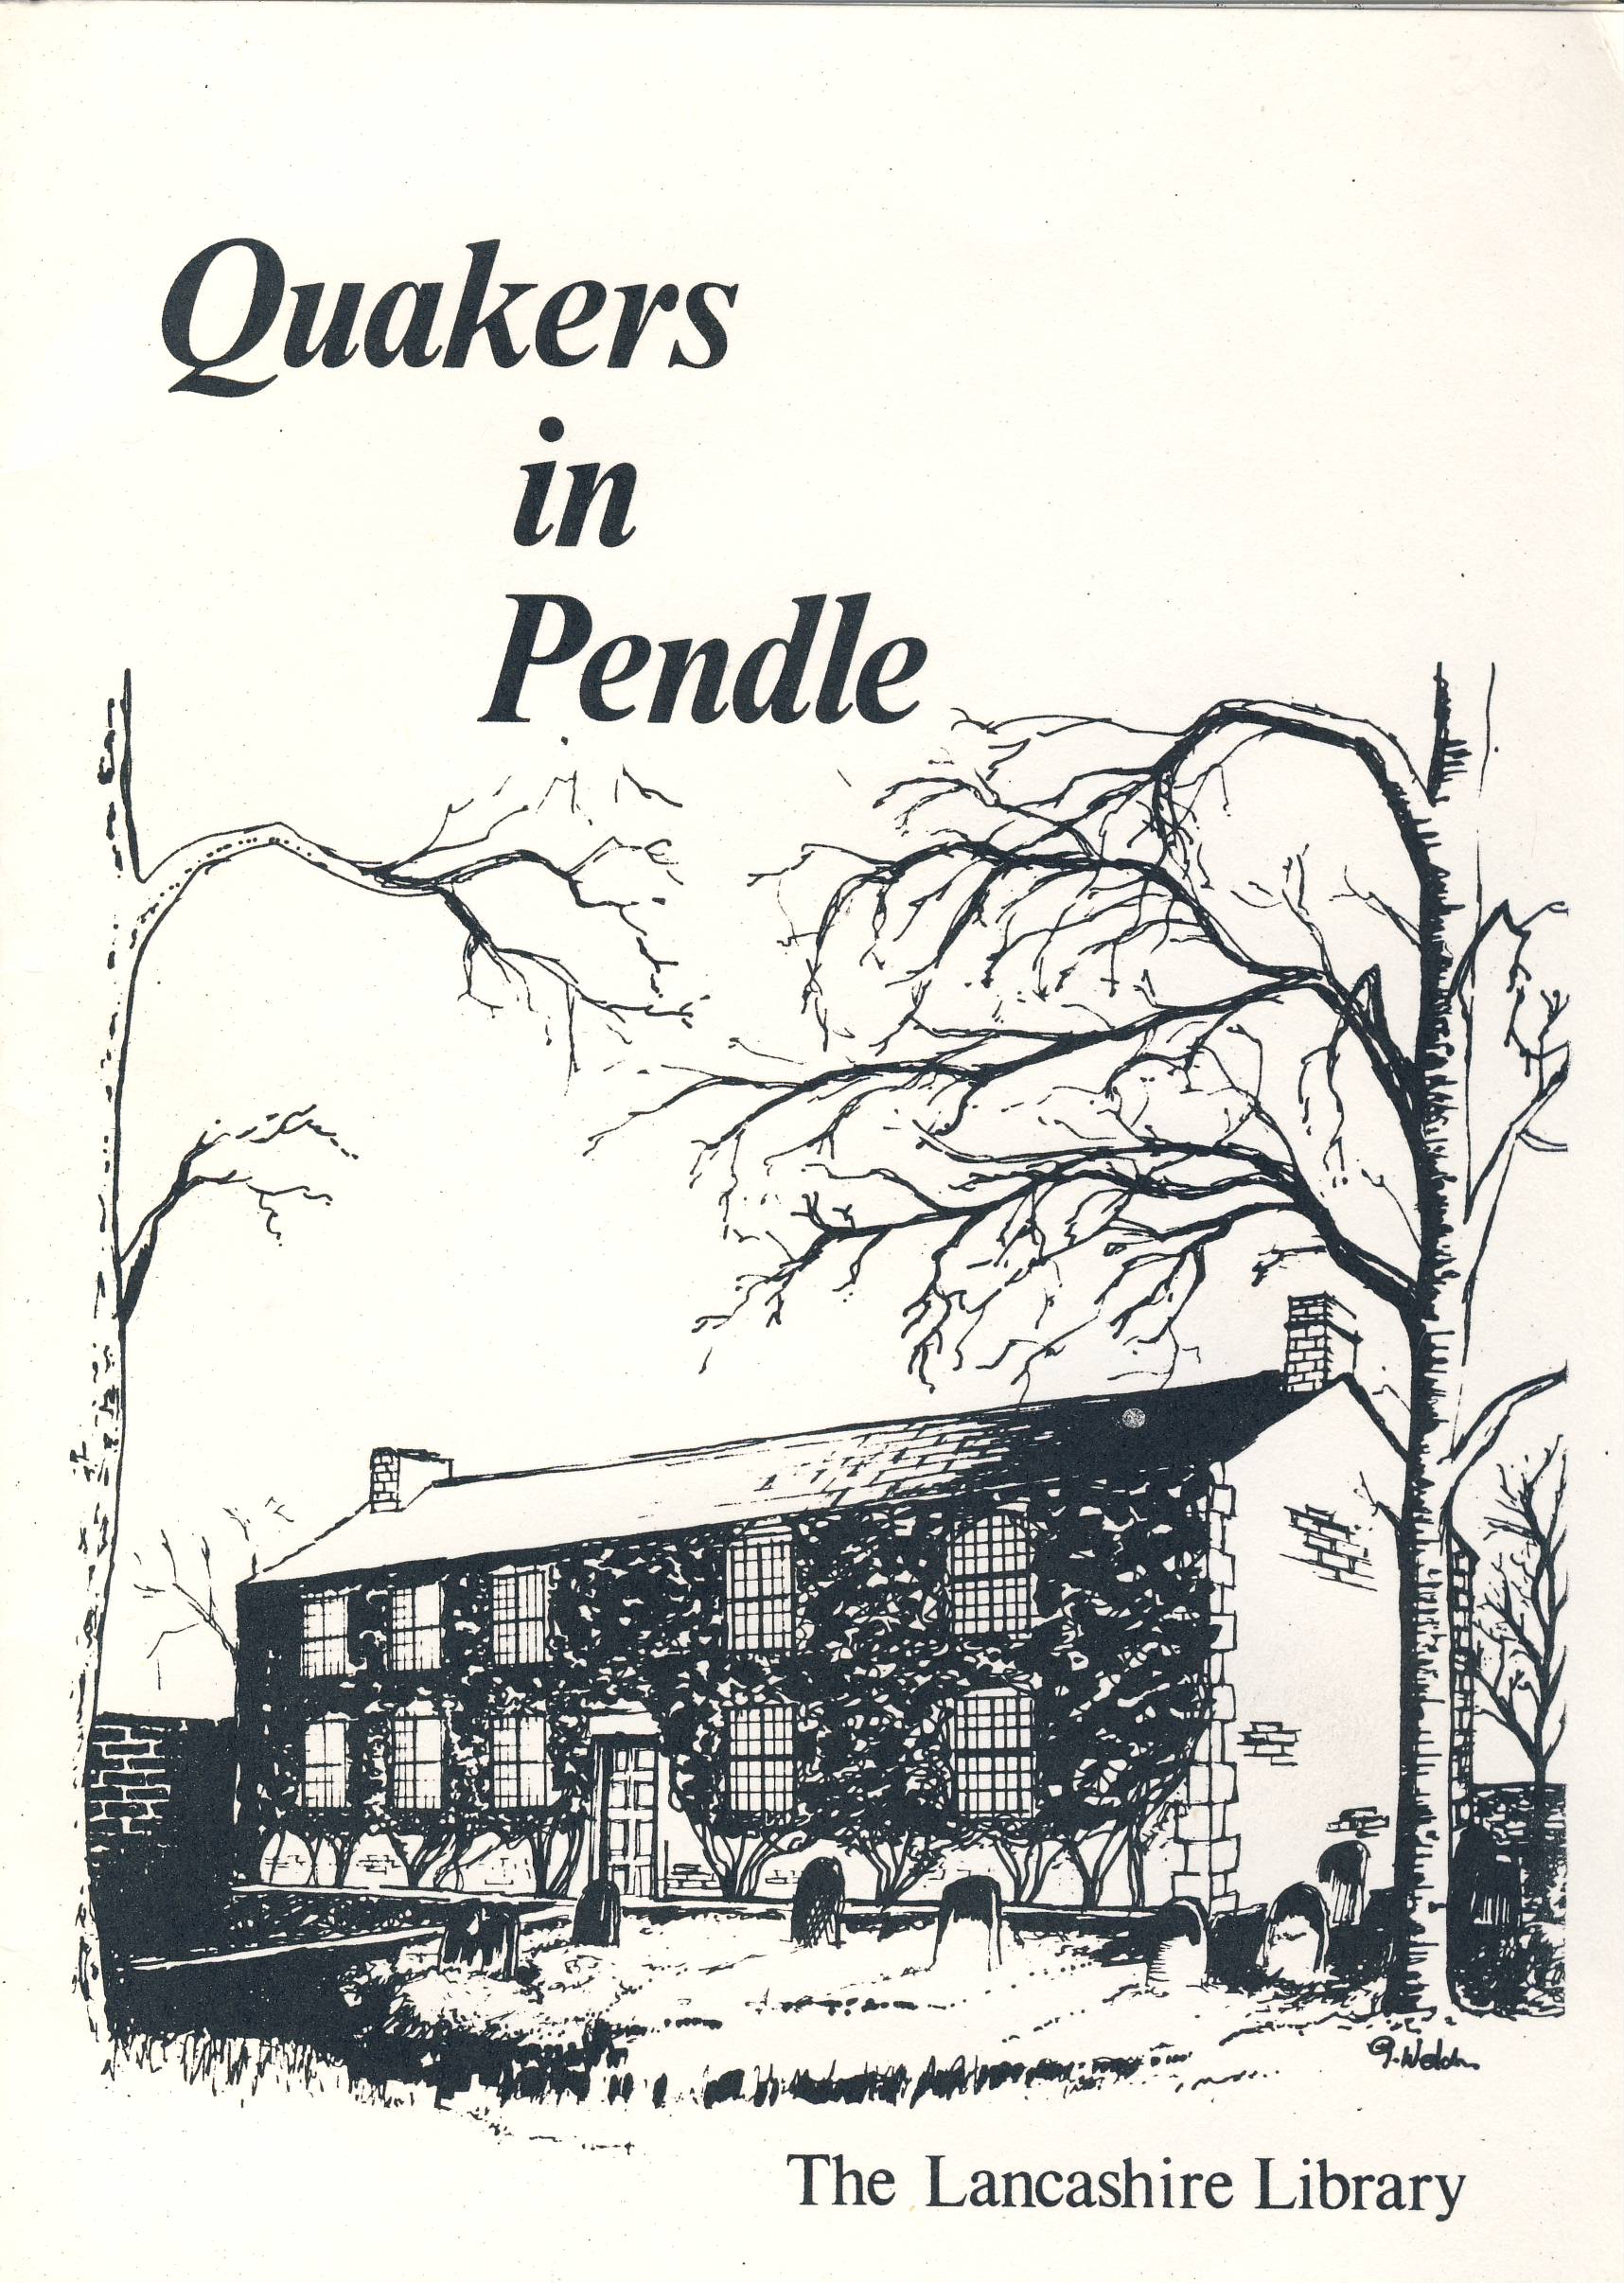 Quakers in Pendle by Edwin Alton Lancashire Library vintage 12 page booklet refS5 Measure approx 21cm x14cm -  a pre-owned vintage item in good condition.